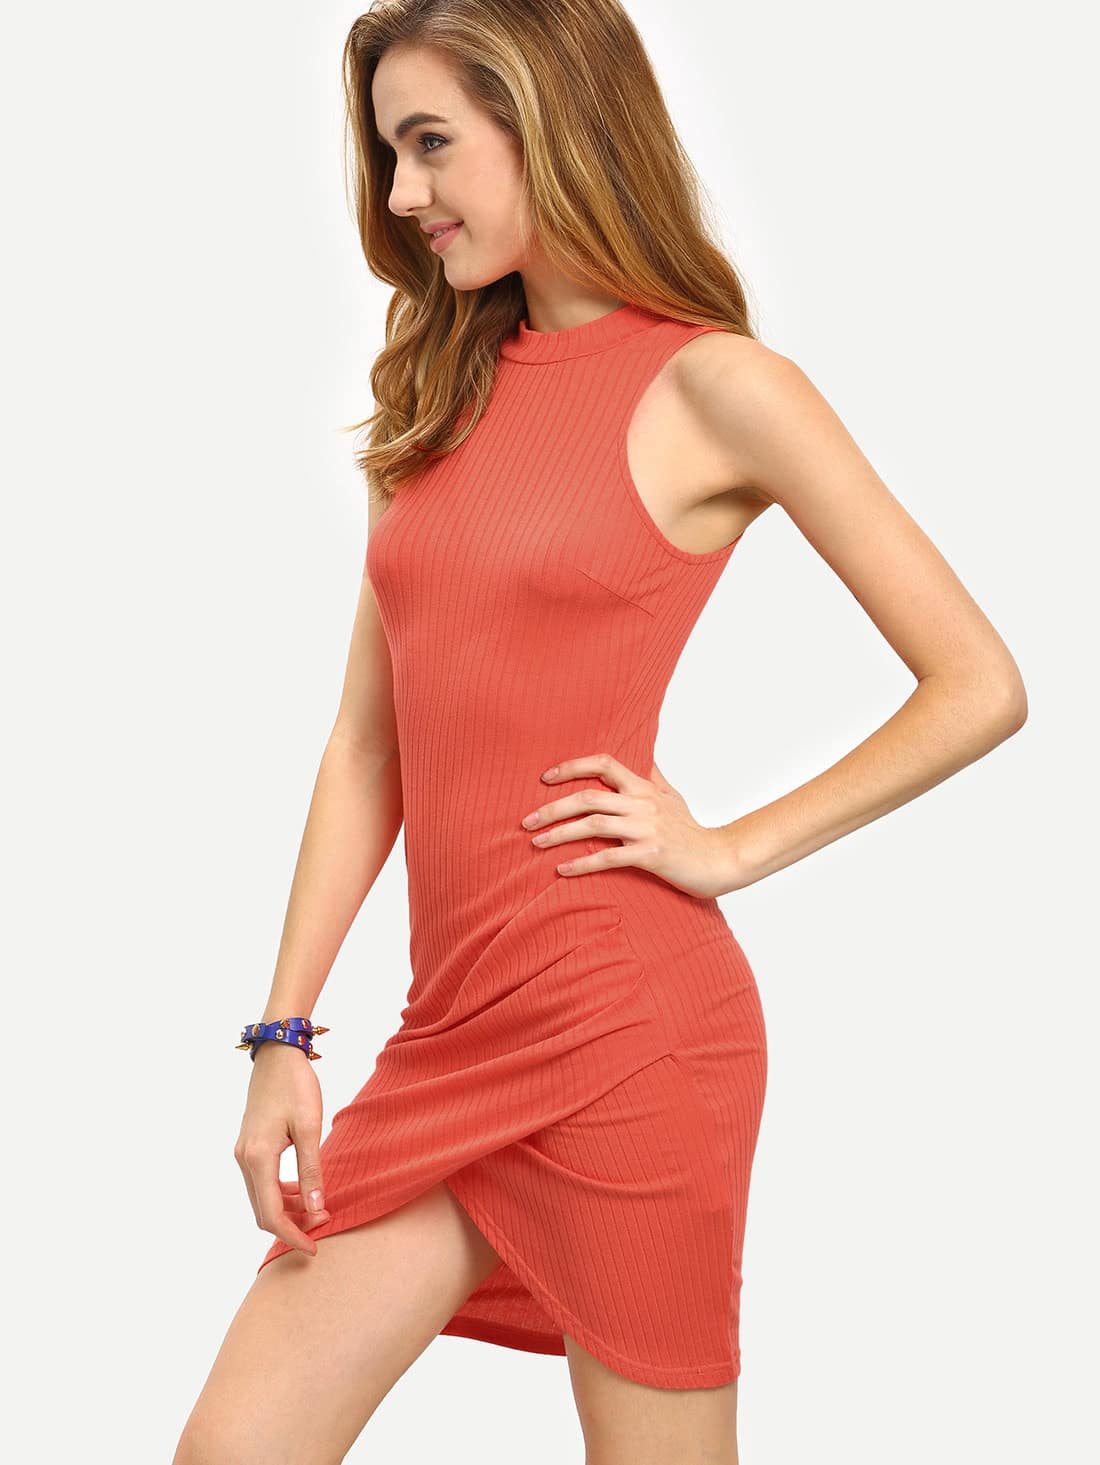 Red Crew Neck Sleeveless Ribbed Wrap Dress dress160512722